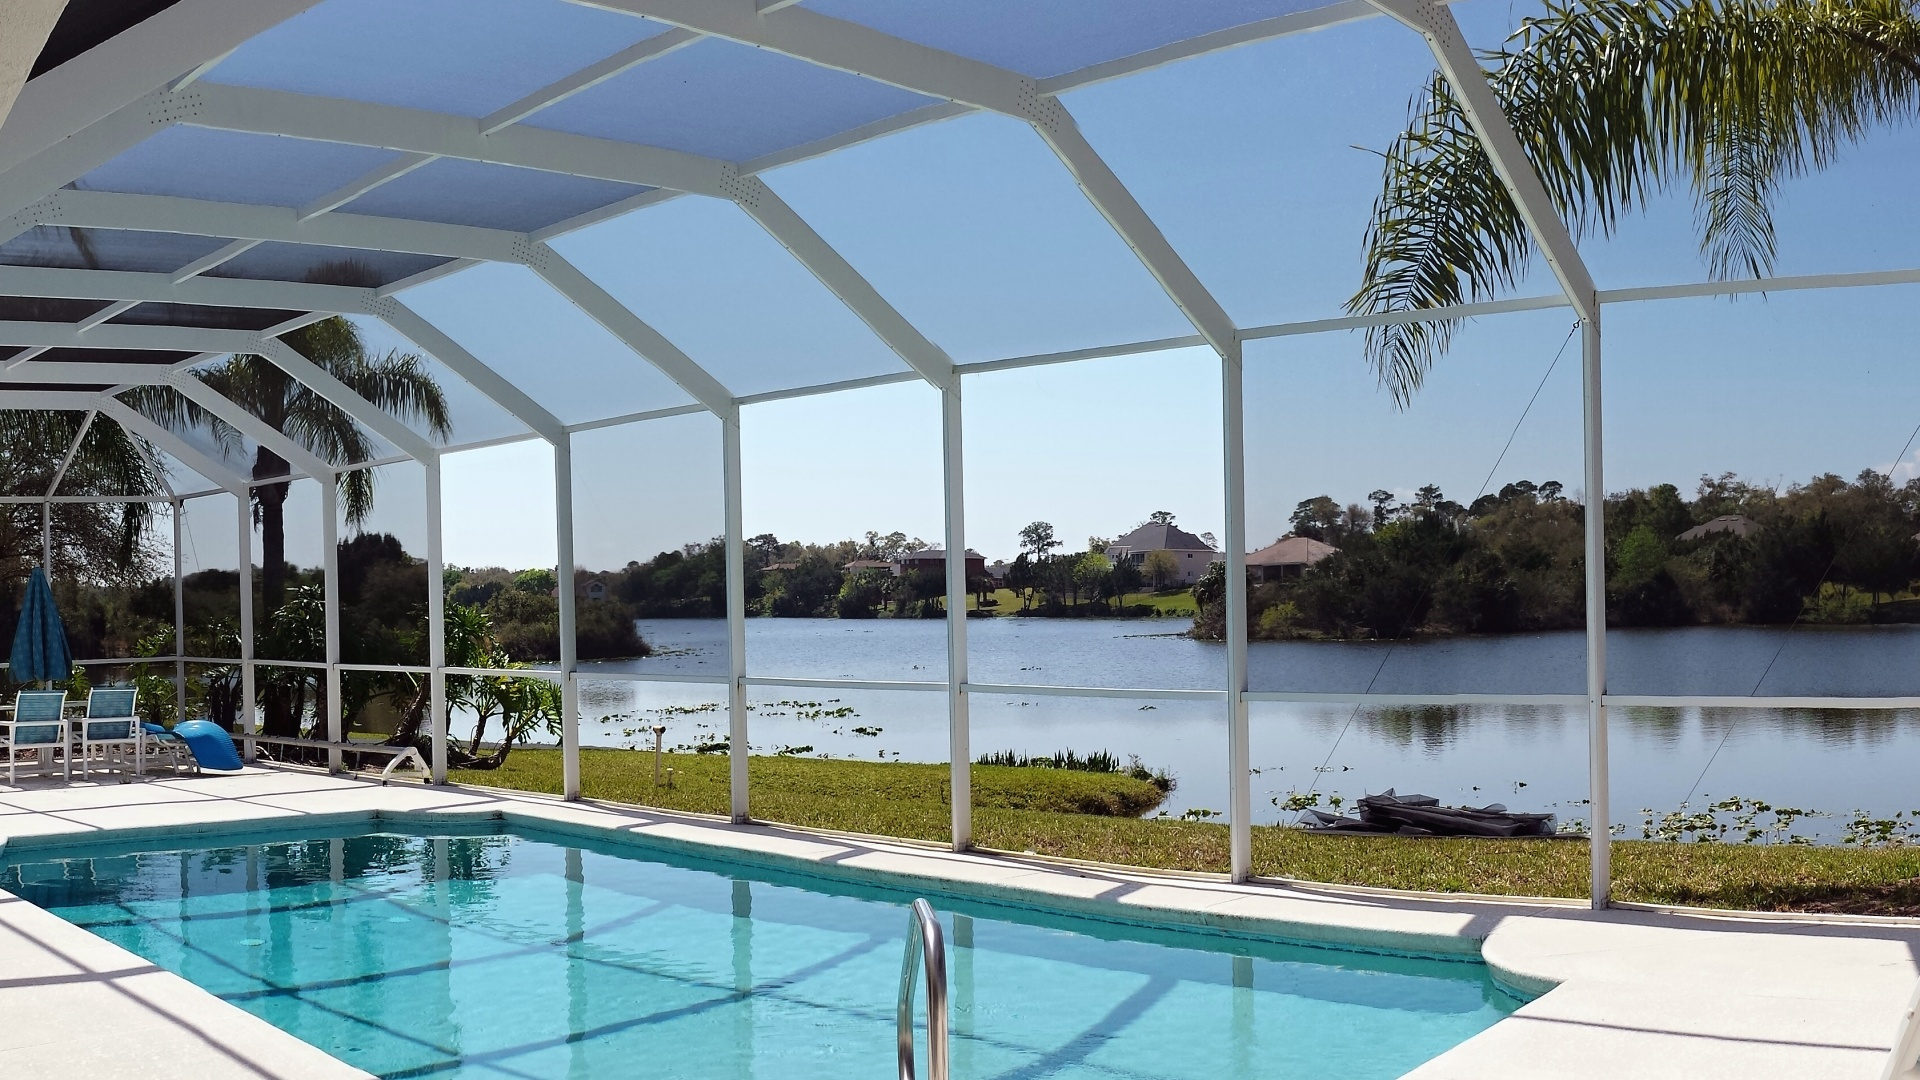 pool-screen-repair-ormond-beach-15-1080p.jpg